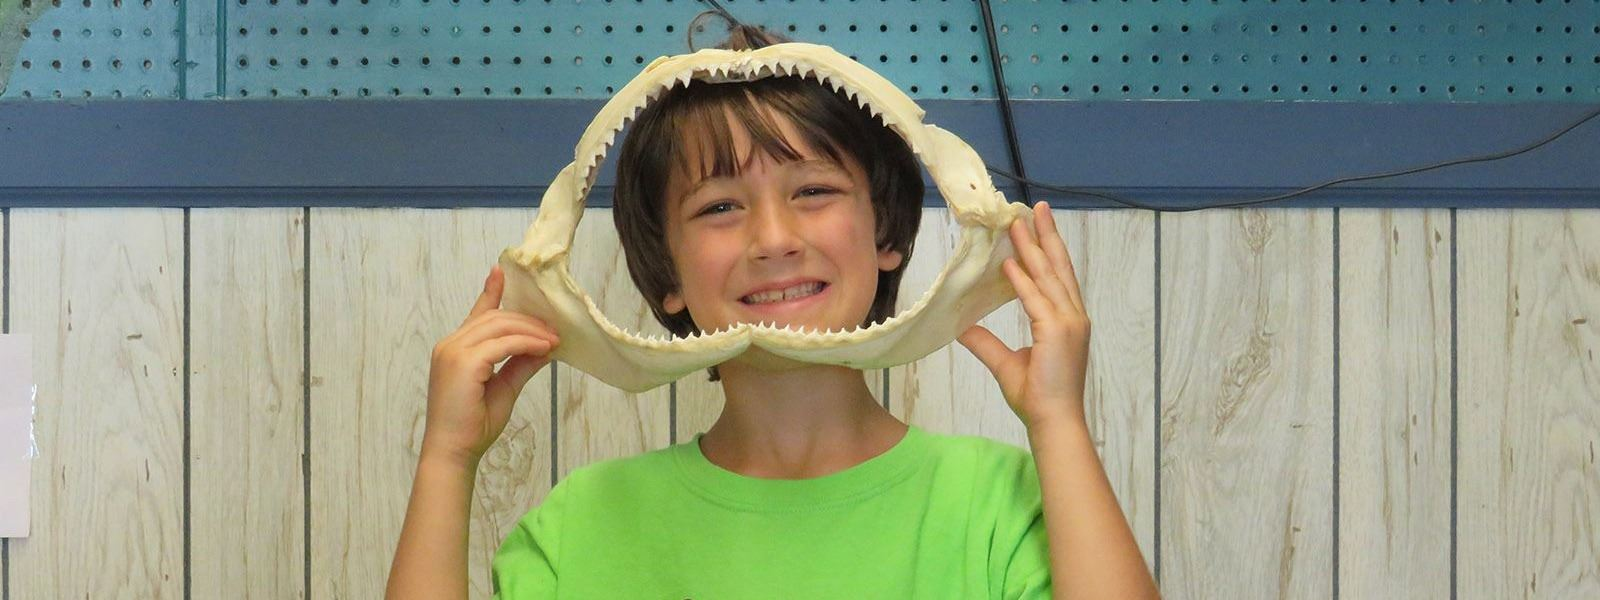 summer camp participant holding sharks teeth